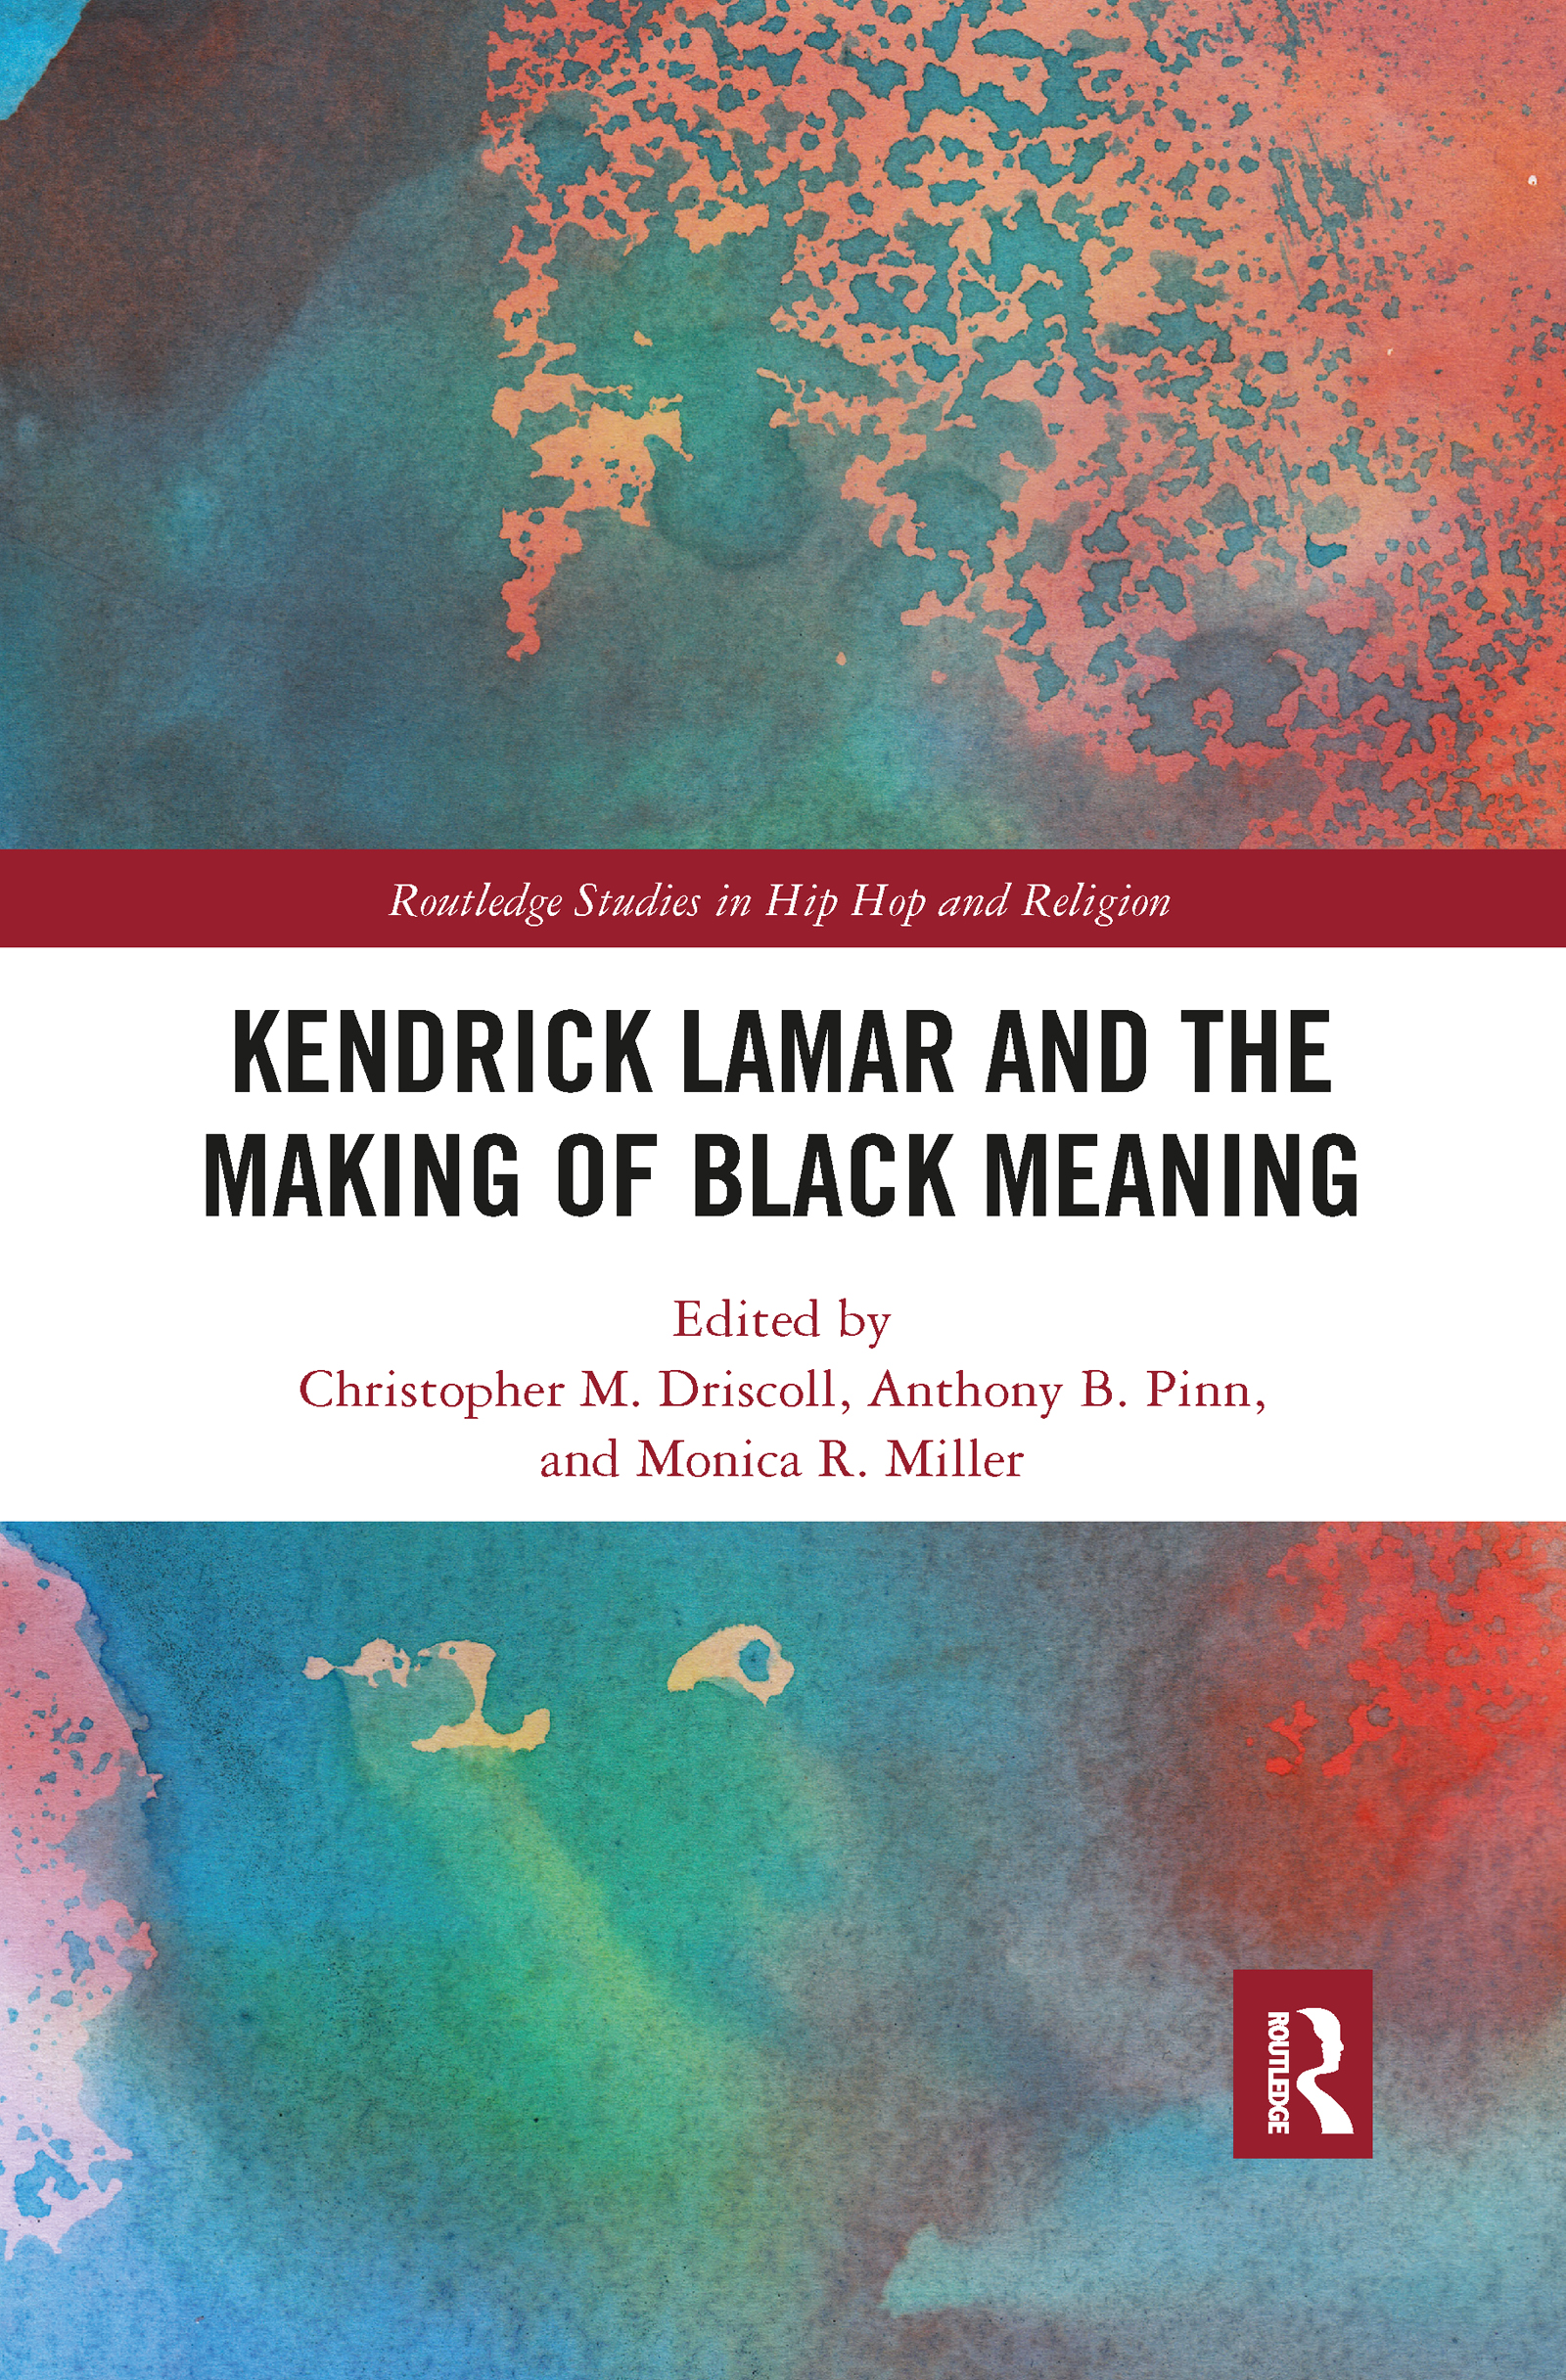 Kendrick Lamar and the Making of Black Meaning